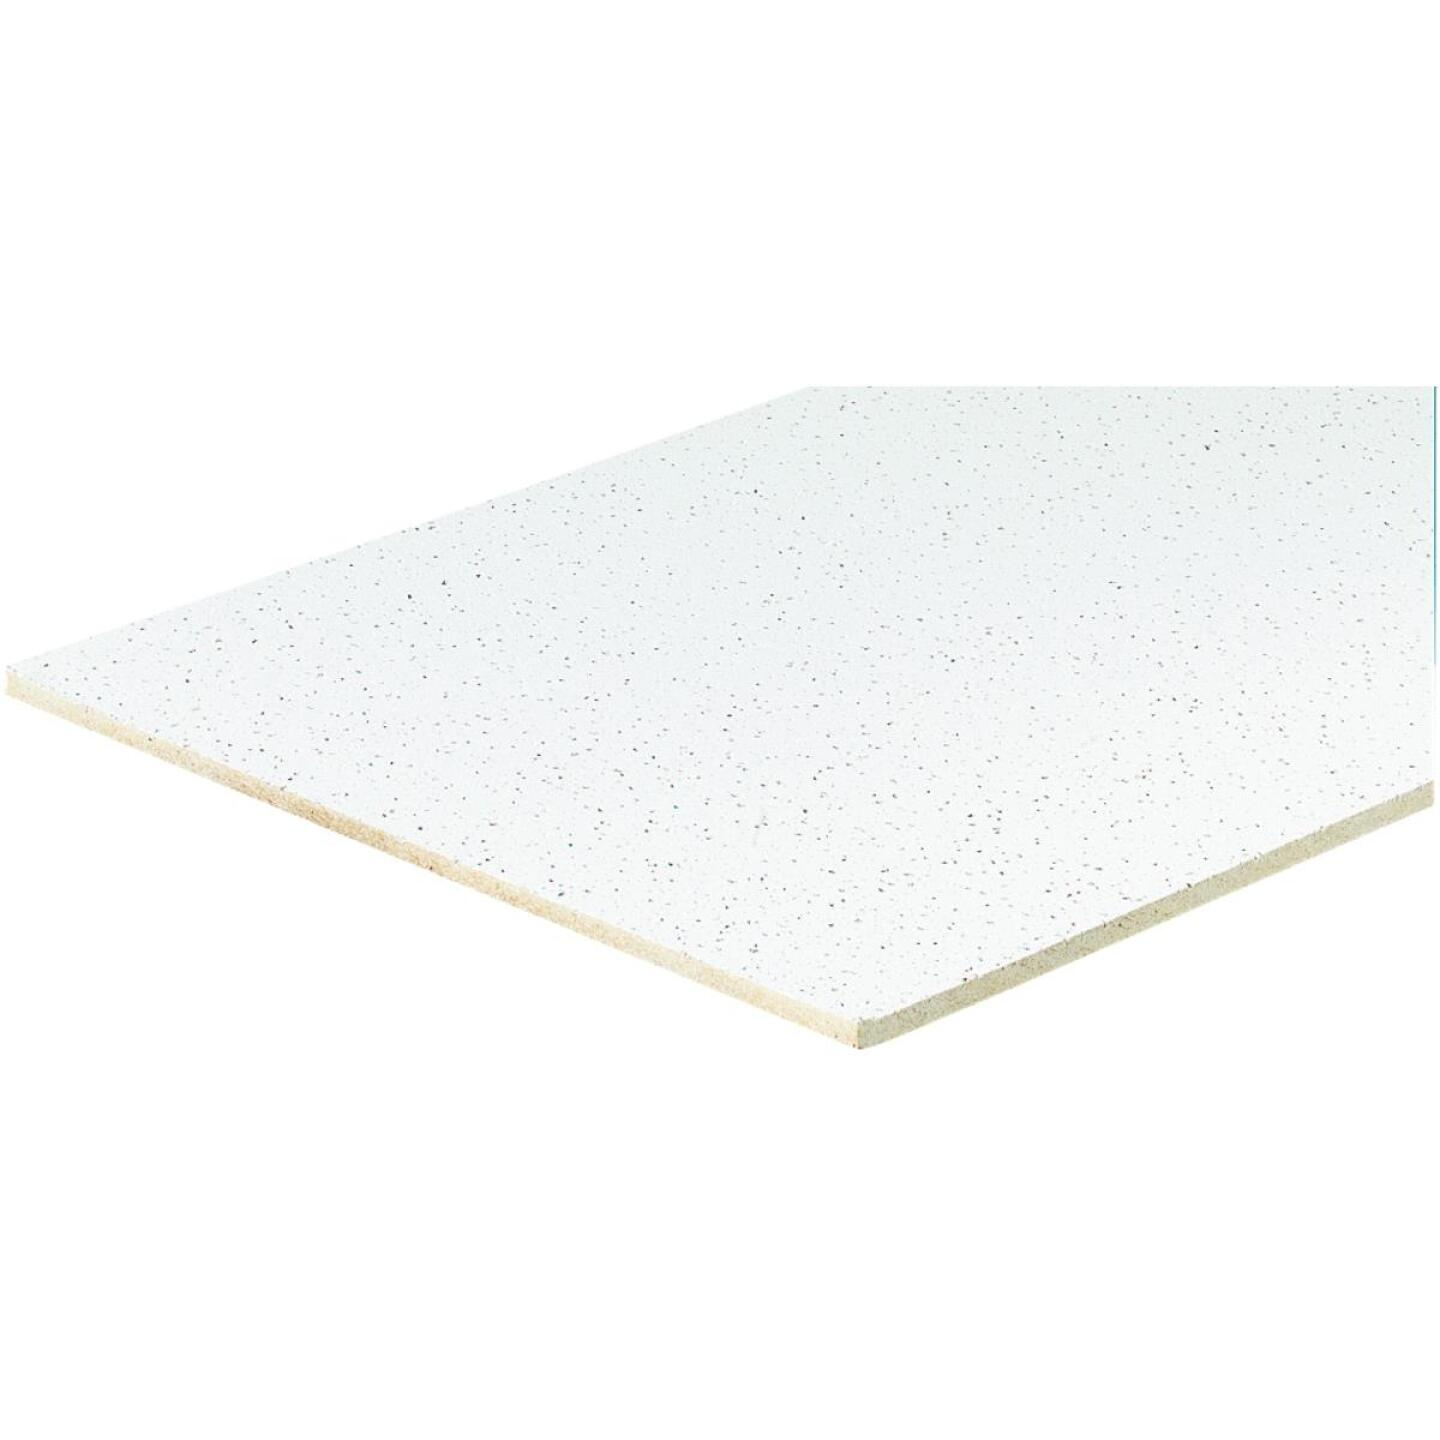 Radar Fissured 2 Ft. x 4 Ft. White Mineral Fiber Square Edge Suspended Ceiling Tile (16-Count) Image 2